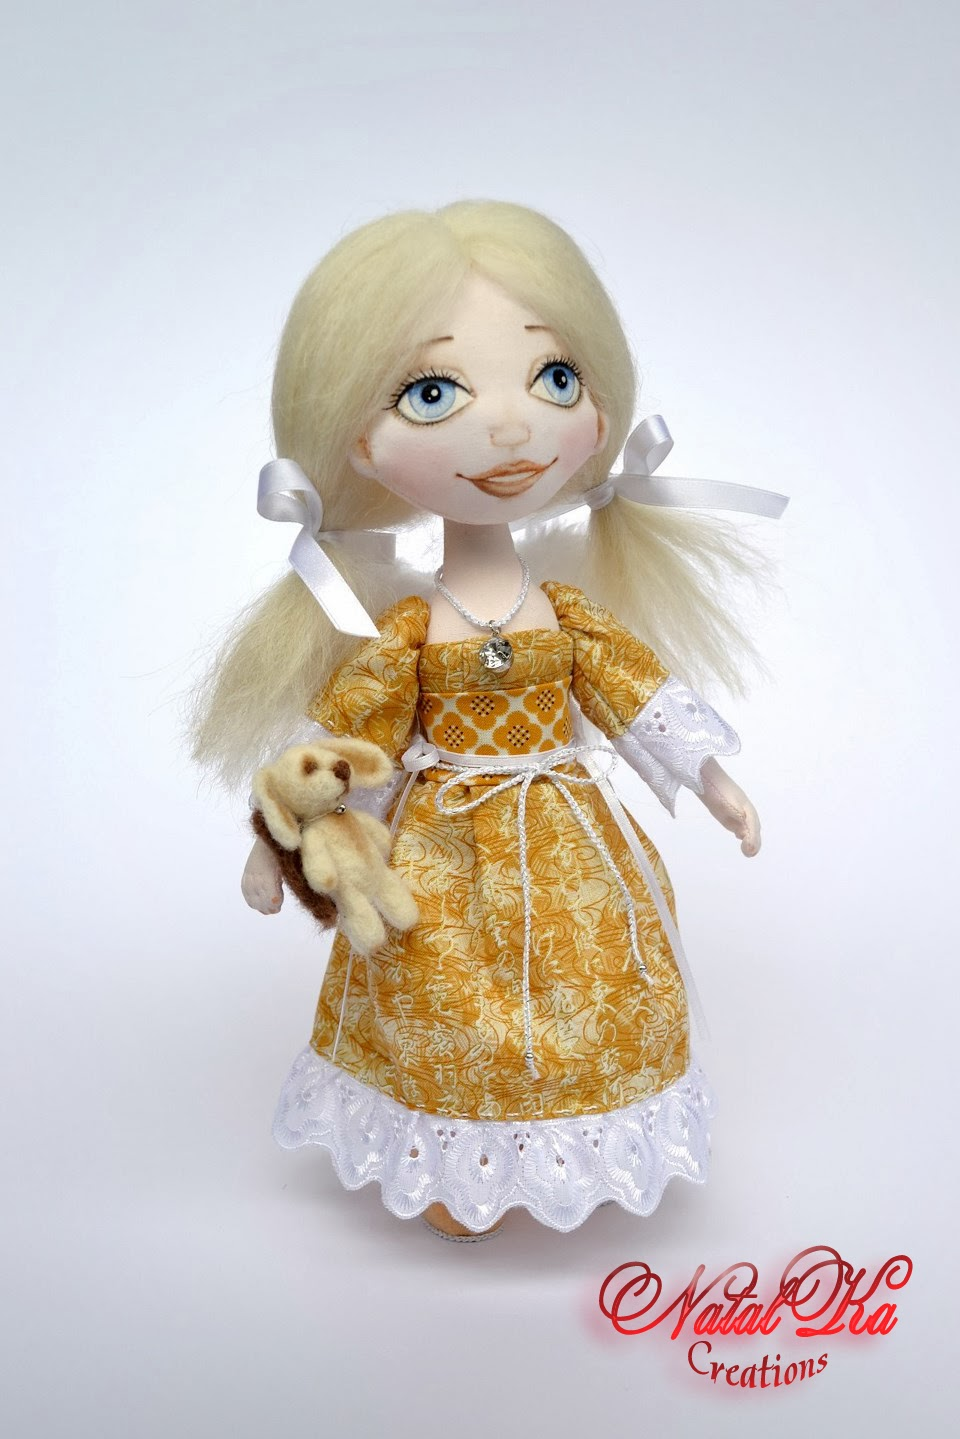 Авторская текстильная кукла от NatalKa Creations. Cloth art doll handmade by NatalKa Creations.